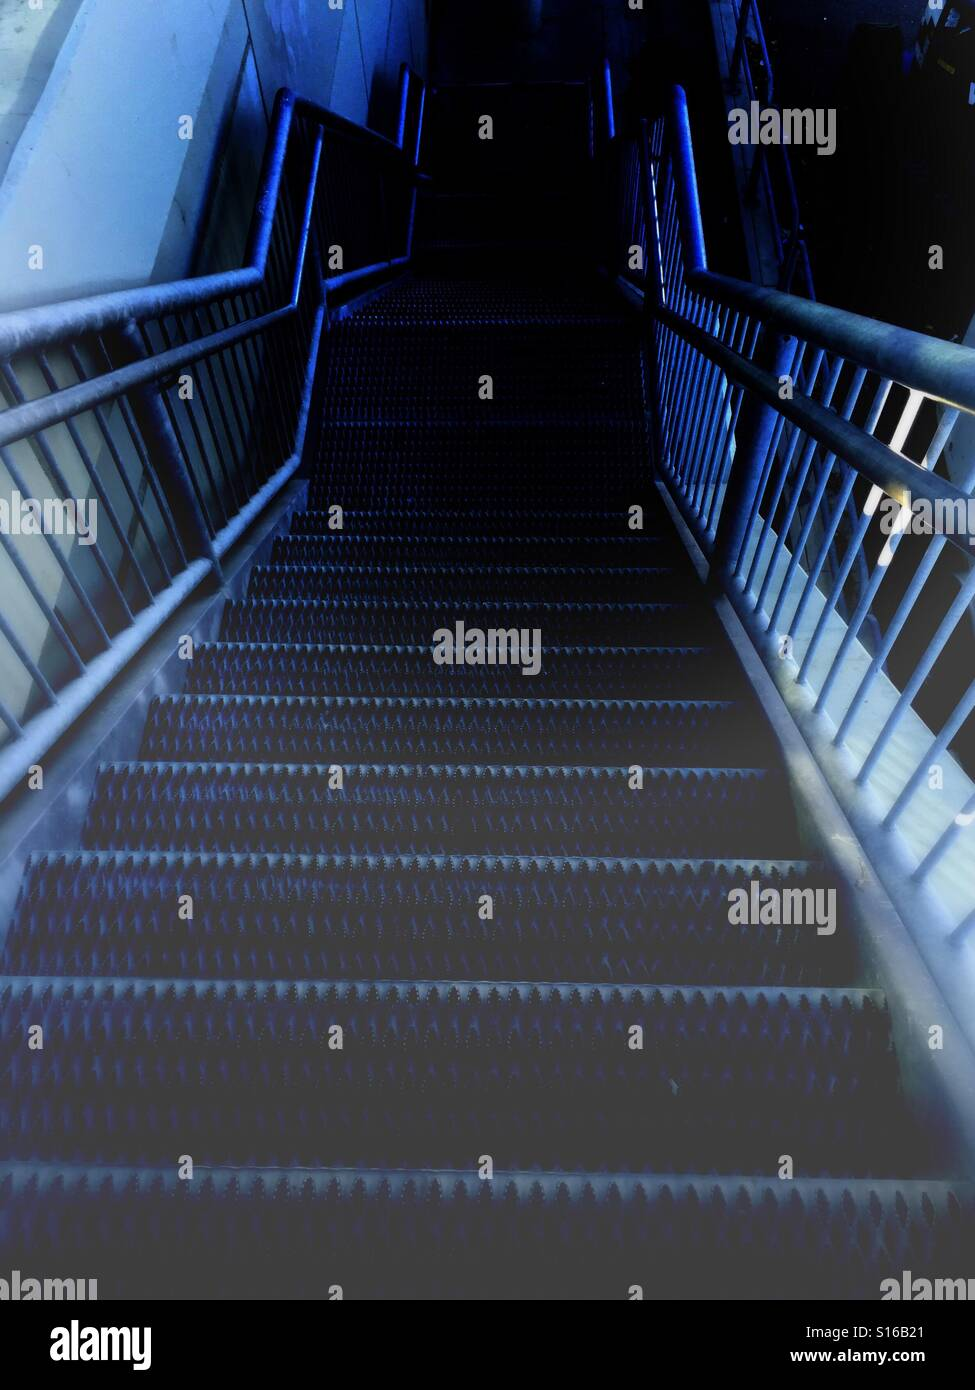 Stairway to darkness - Stock Image